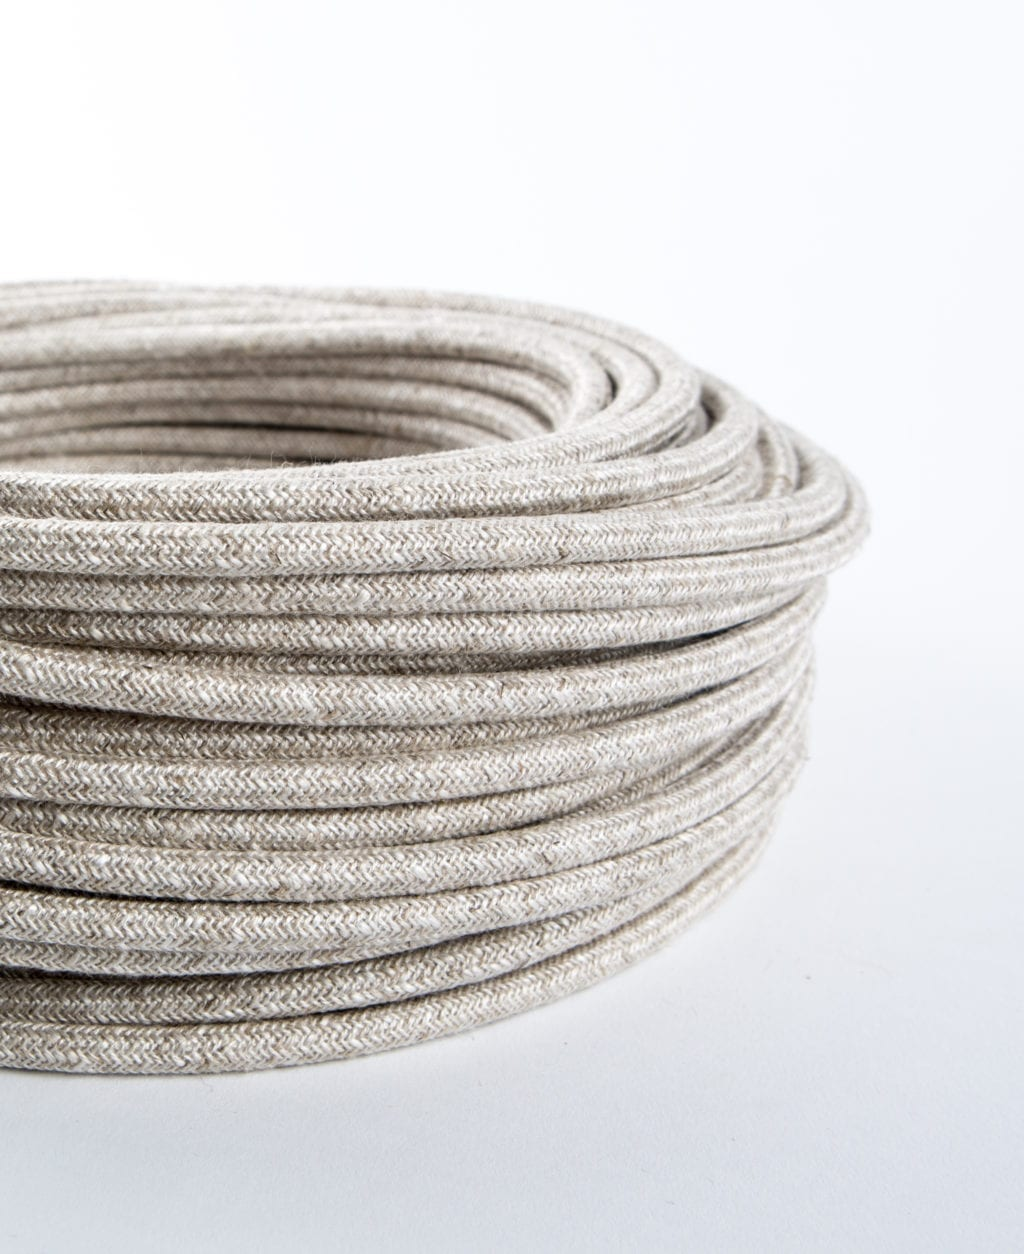 closeup of linen fabric cable coil against white background